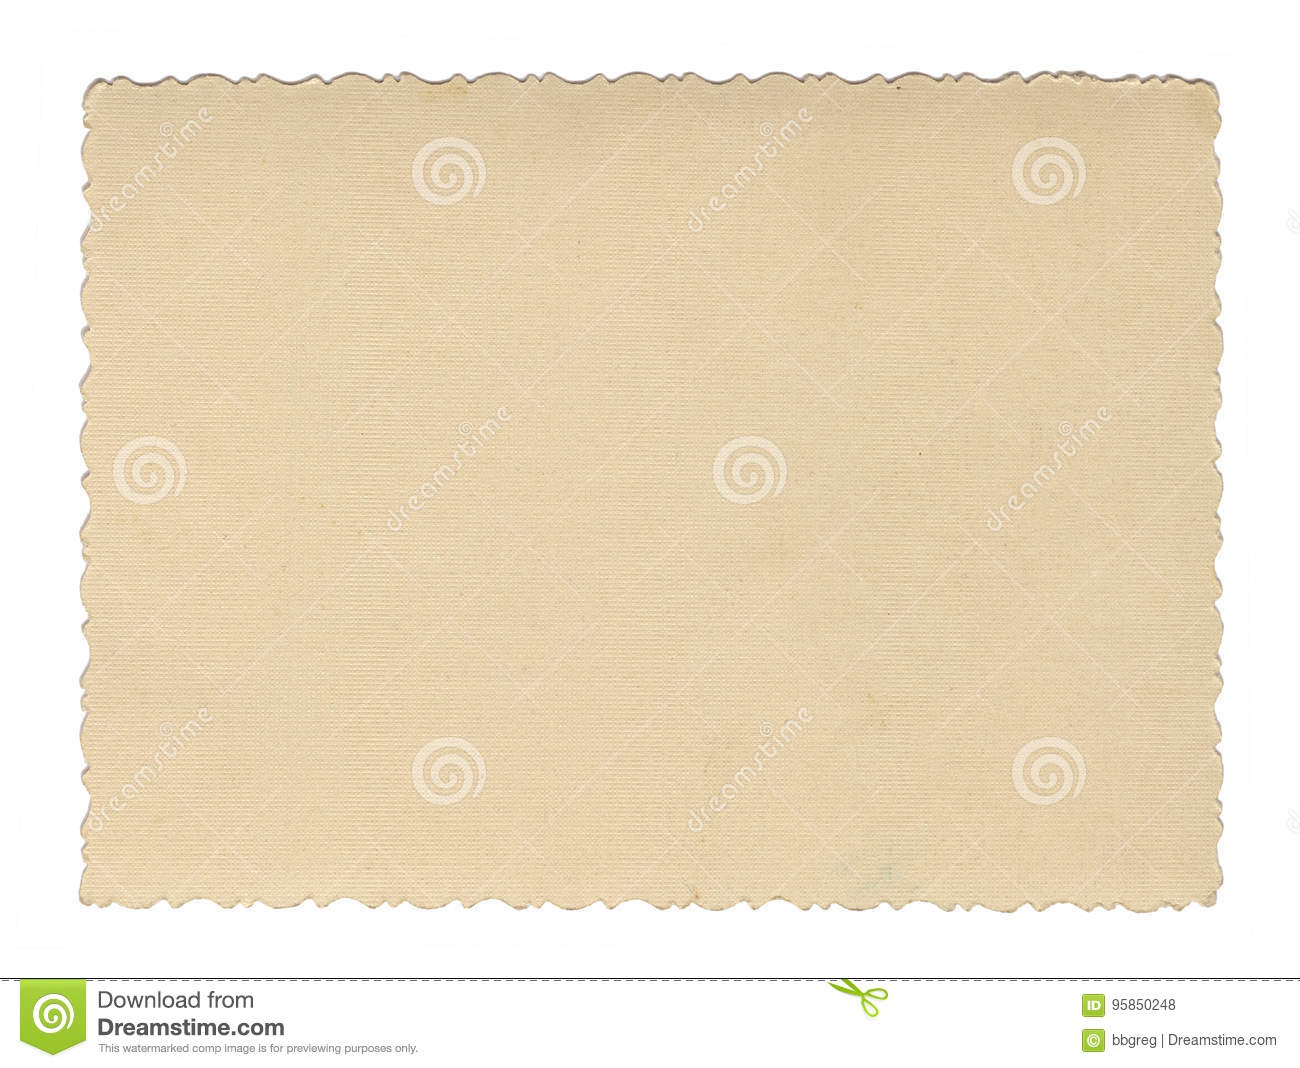 Vintage style brown old paper texture or background, with uneven torn edges